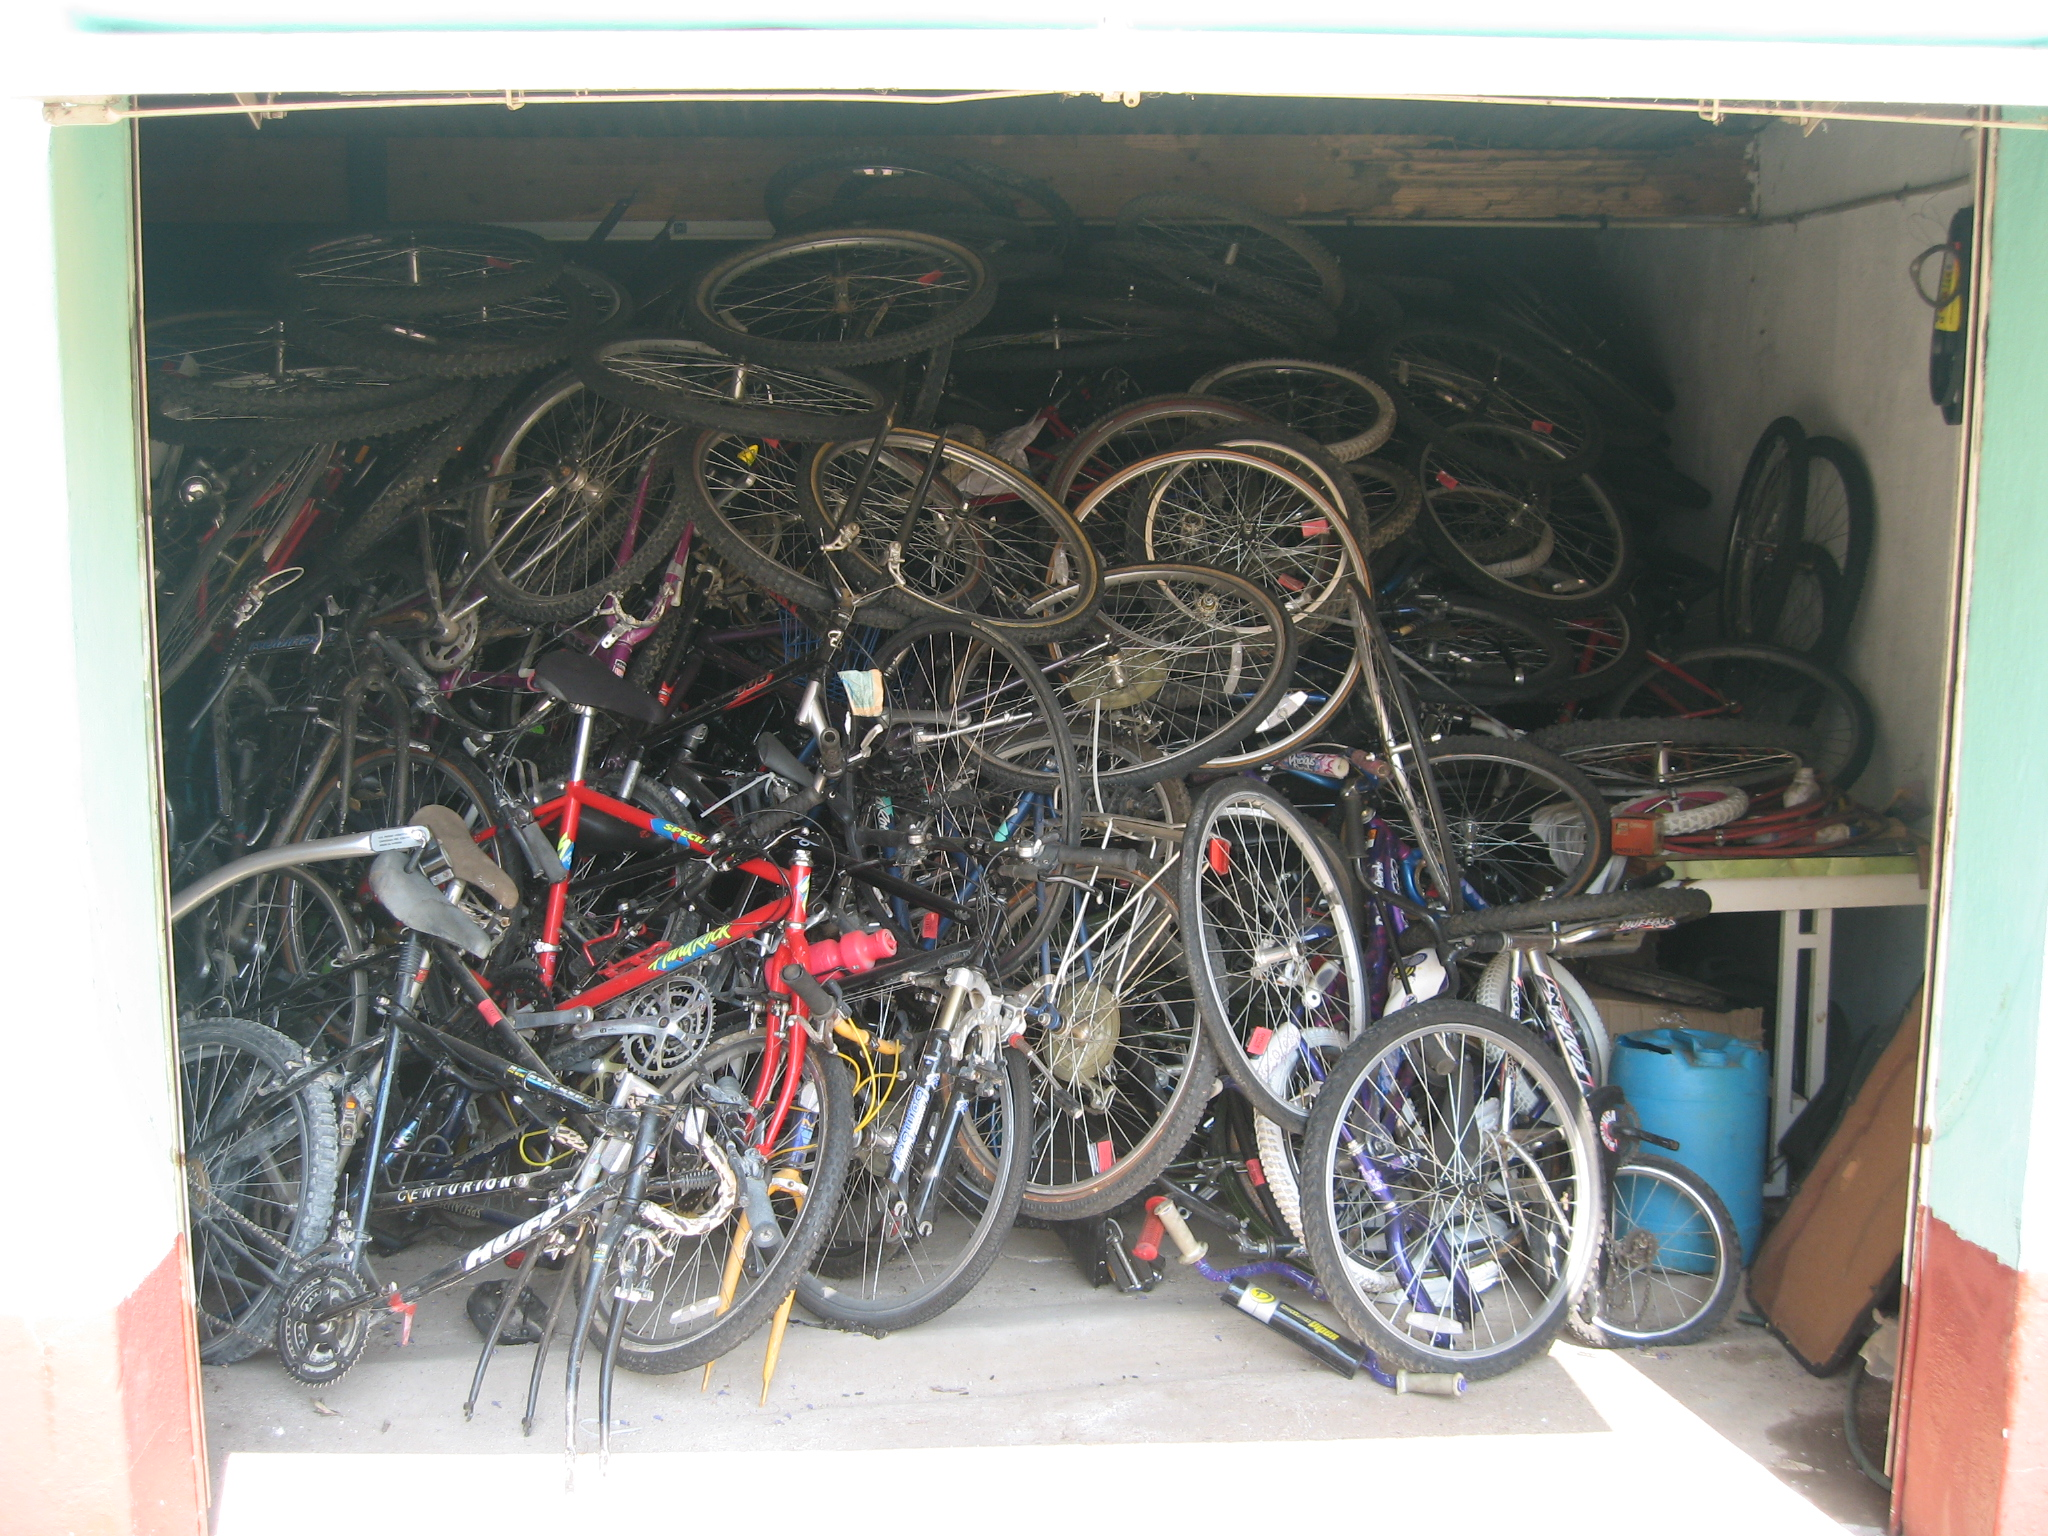 Receiving and storing 500 bikes at a time just won't work